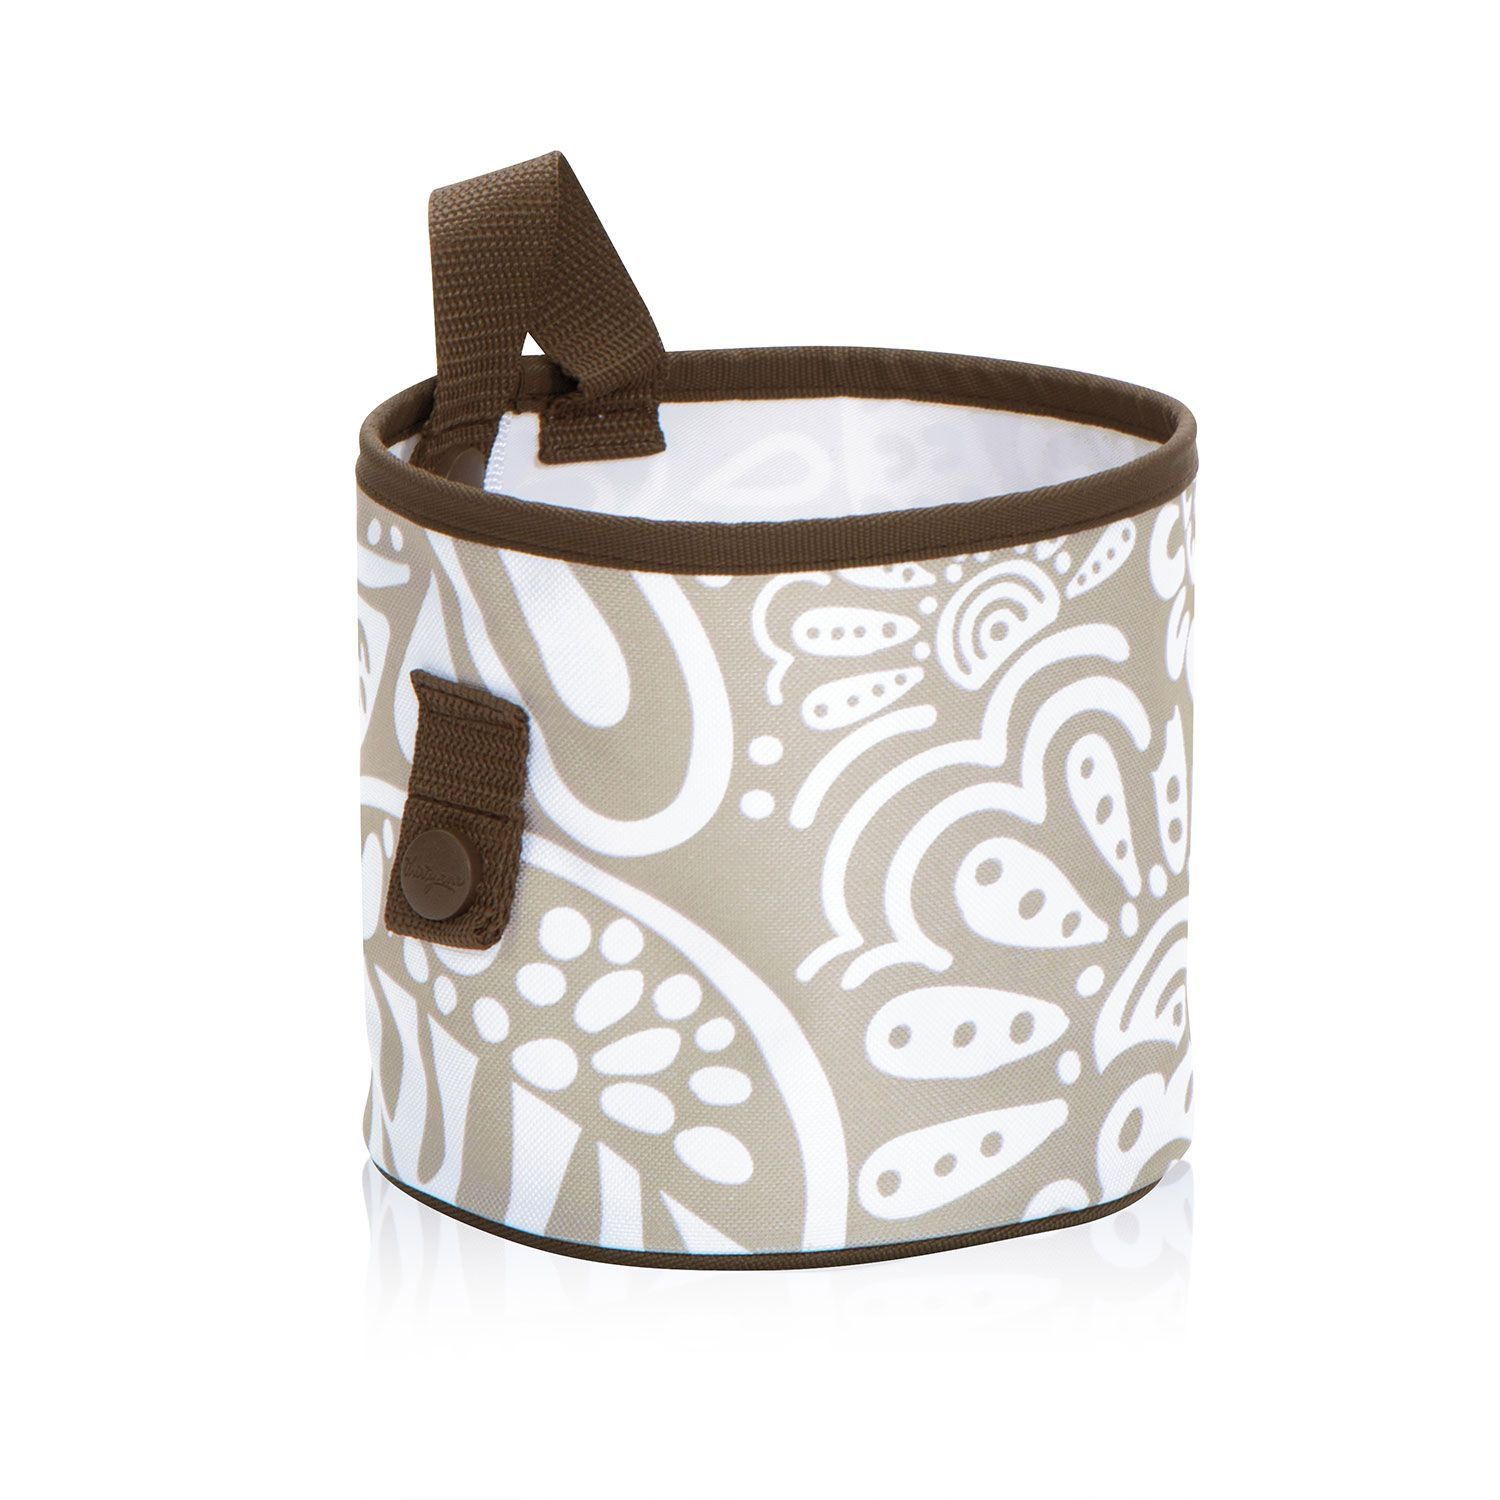 Oh snap bin ideas - One For Arionna Oh Snap Bin In Taupe Playful Parade For 10